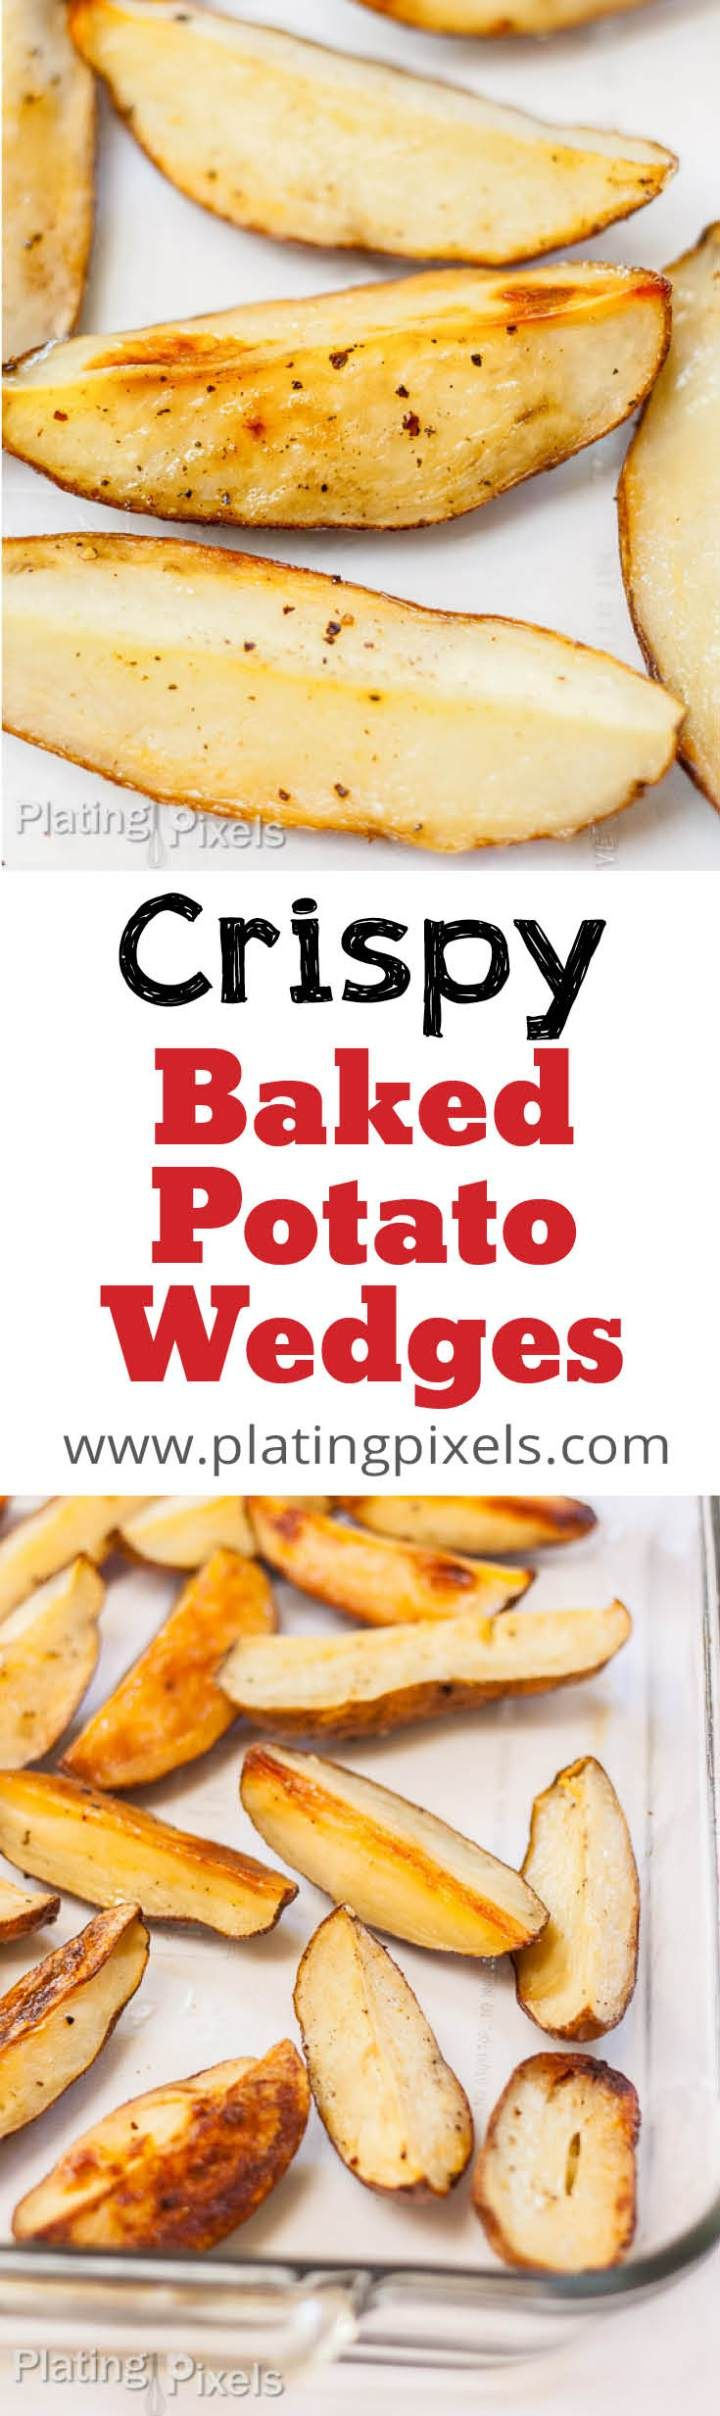 Best 25 easy baked potato ideas on pinterest crock pot potatoes crispy and healthy baked potato wedges ccuart Image collections